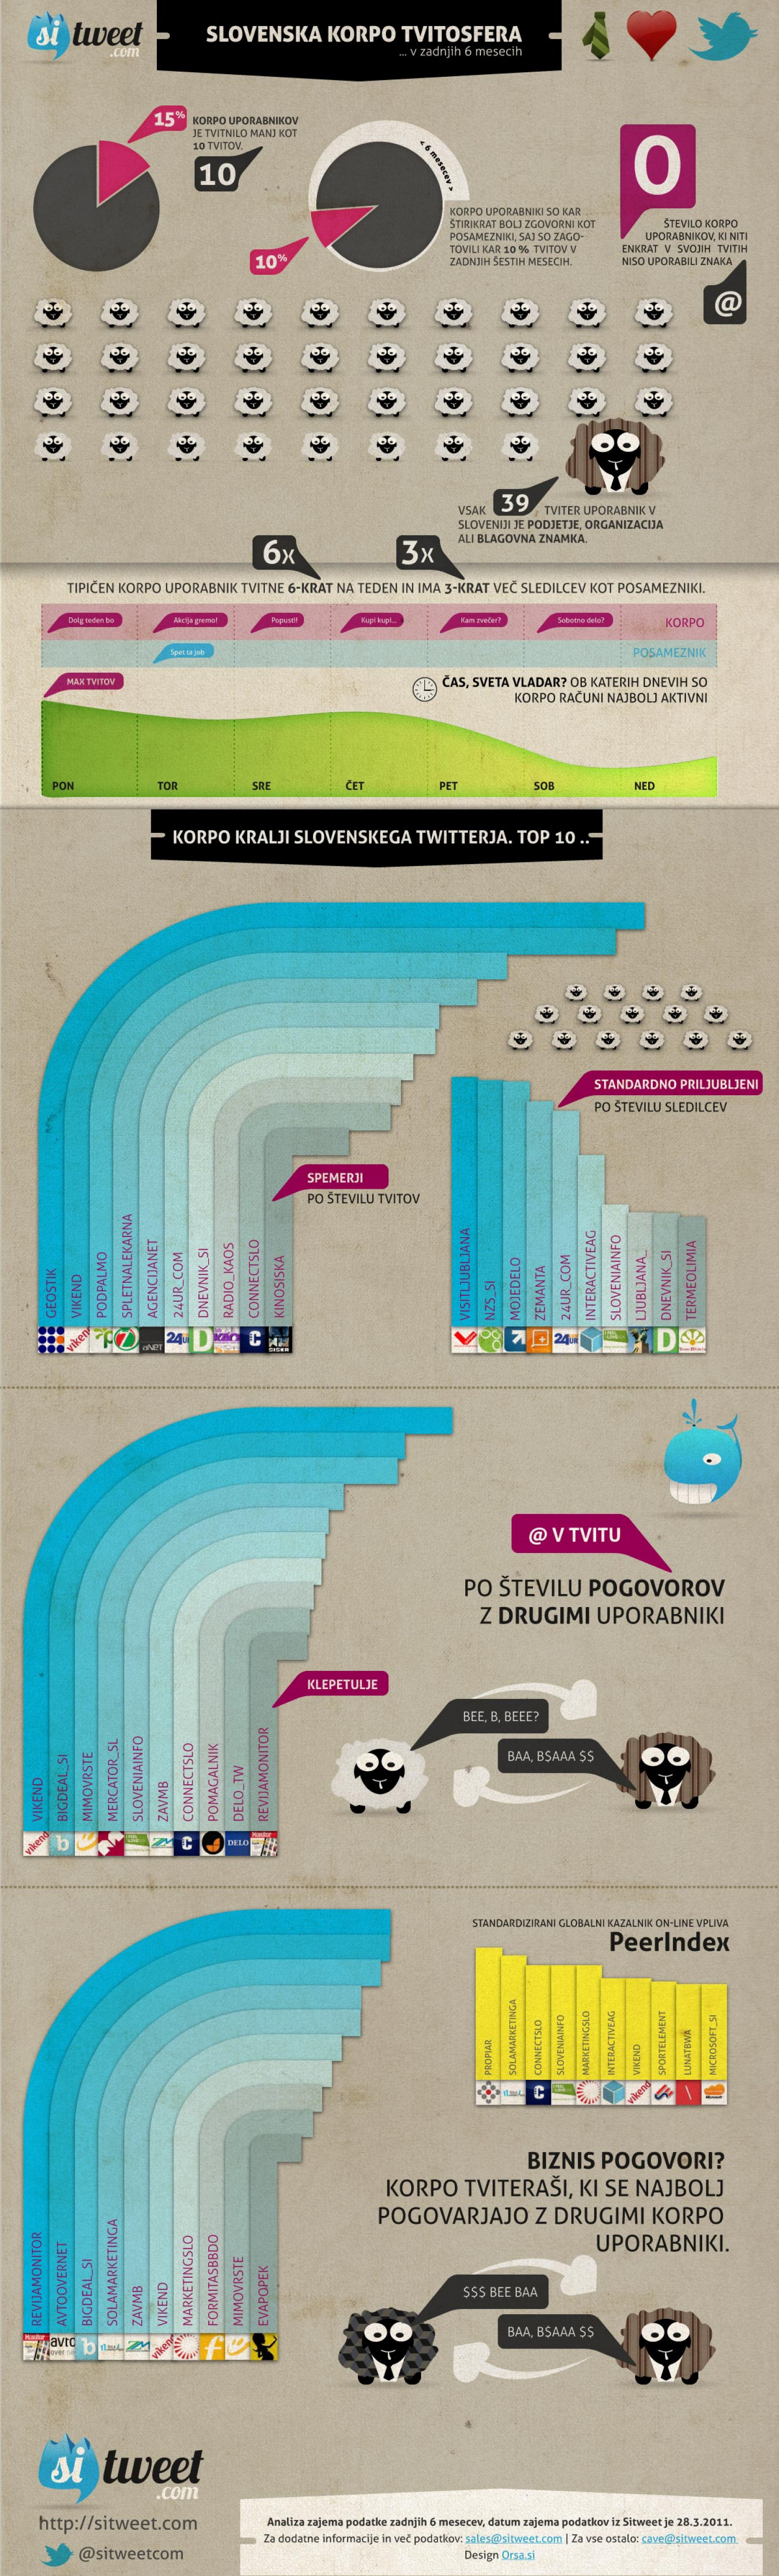 Slovenian corporate accounts on Twitter Infographic